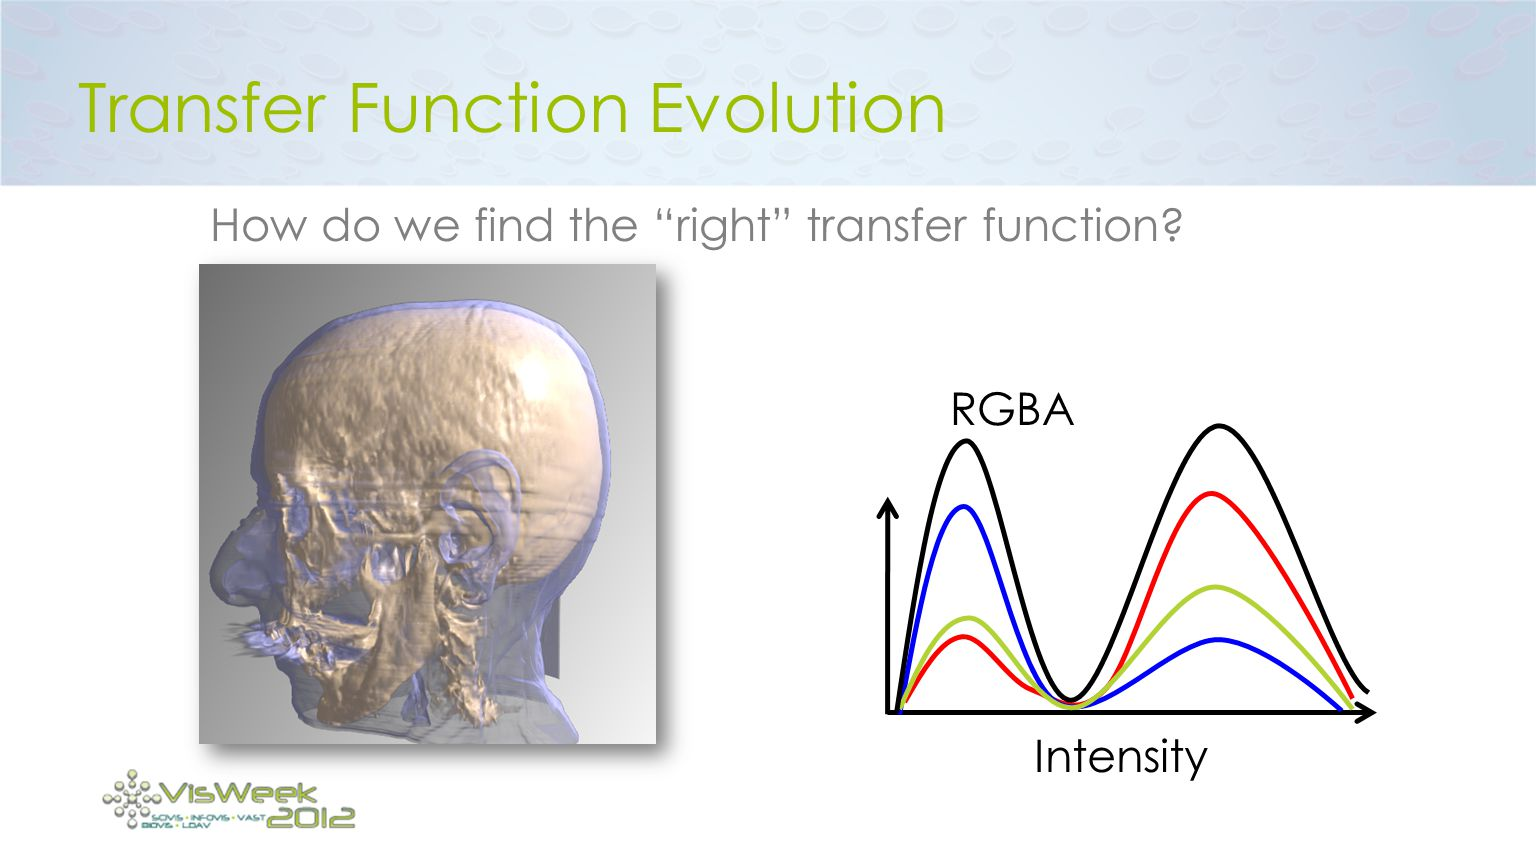 Transfer Function Evolution